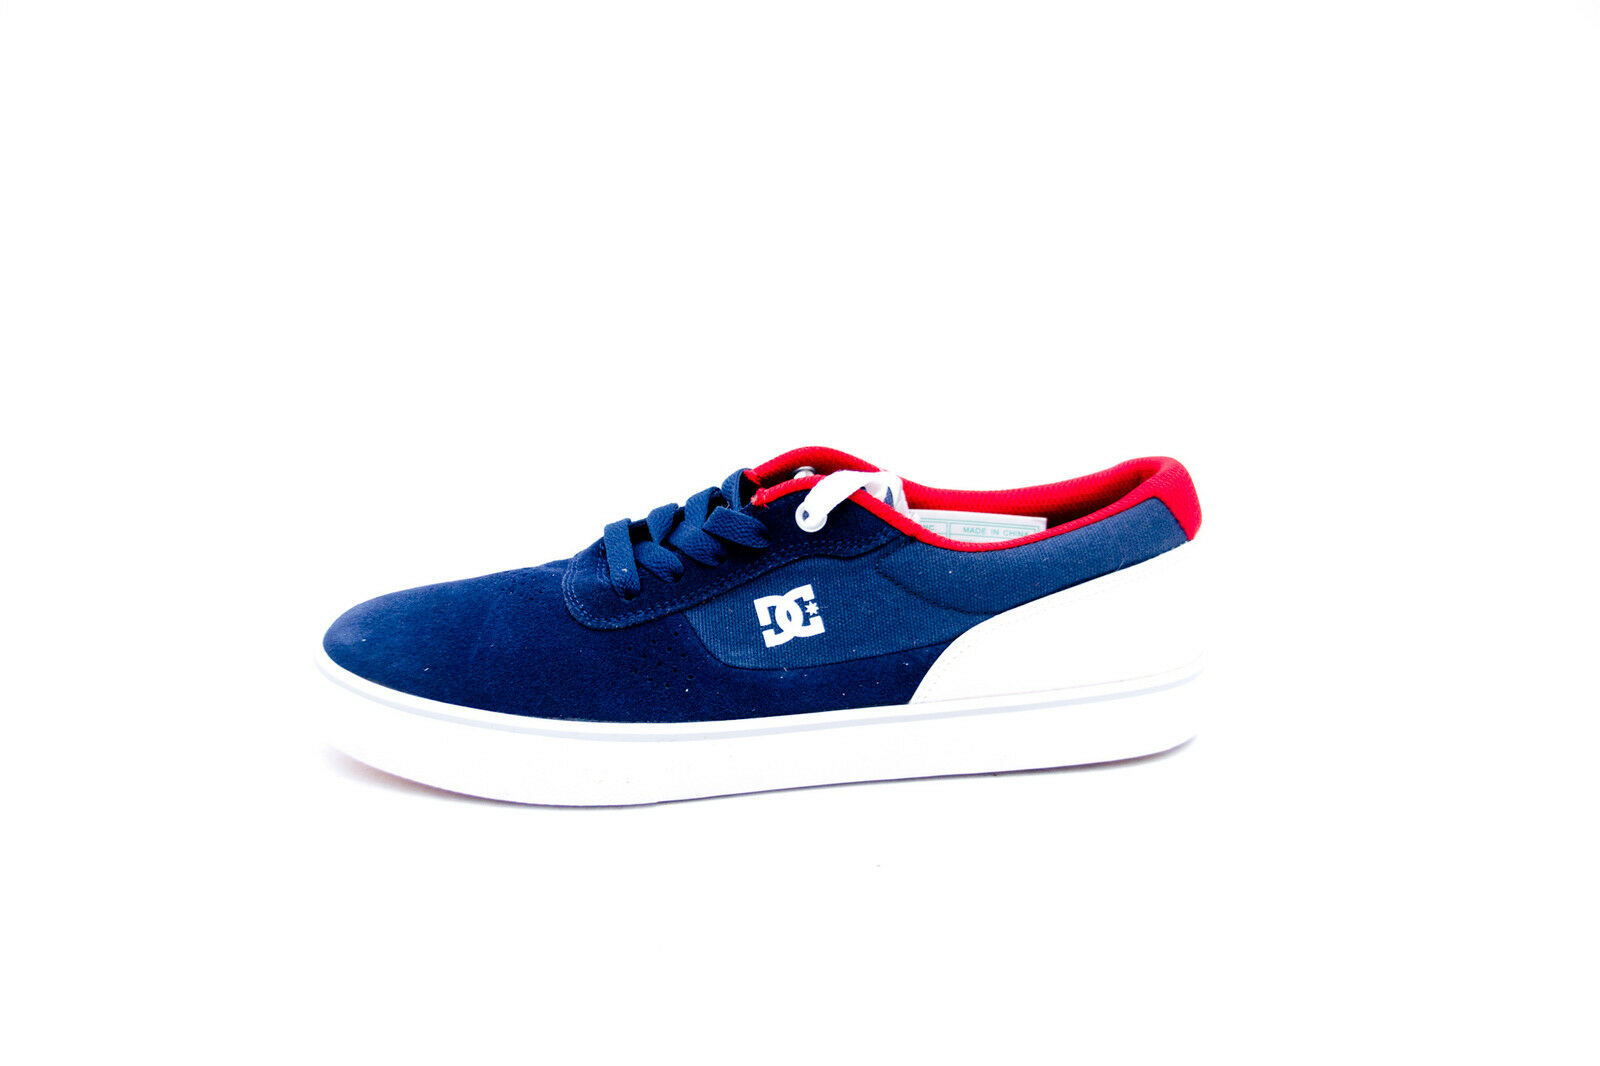 DC shoes F212 267 chaussure shoes man man sample case sample EU 42